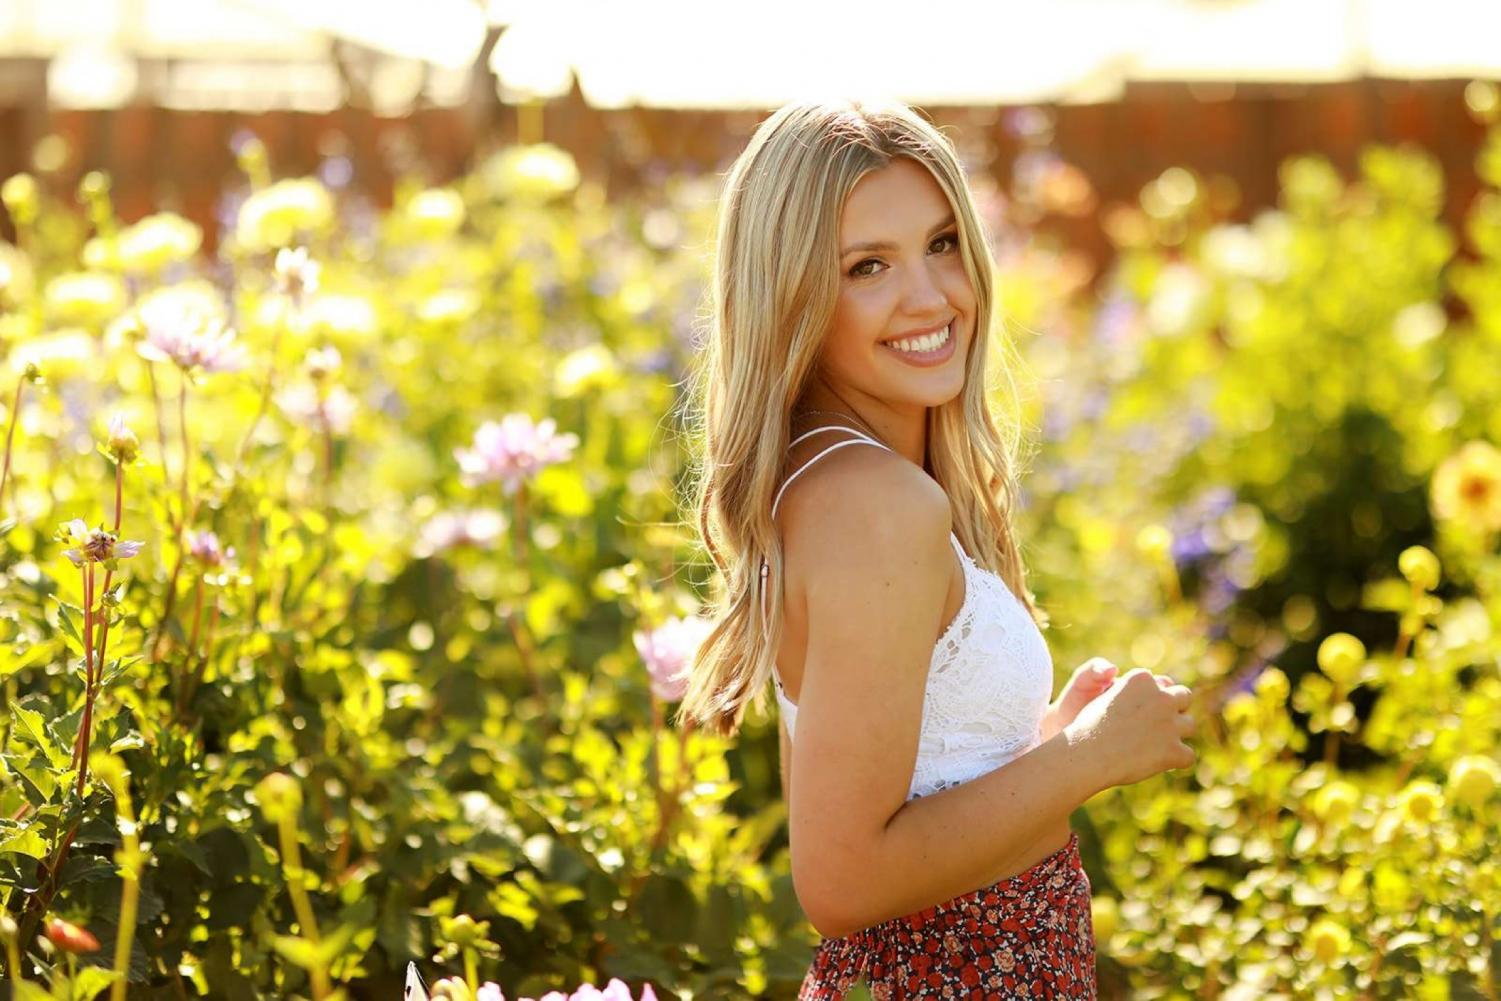 Senior, Maddy Duquette, smiling in the pretty flowers and posing for Haley Graham.